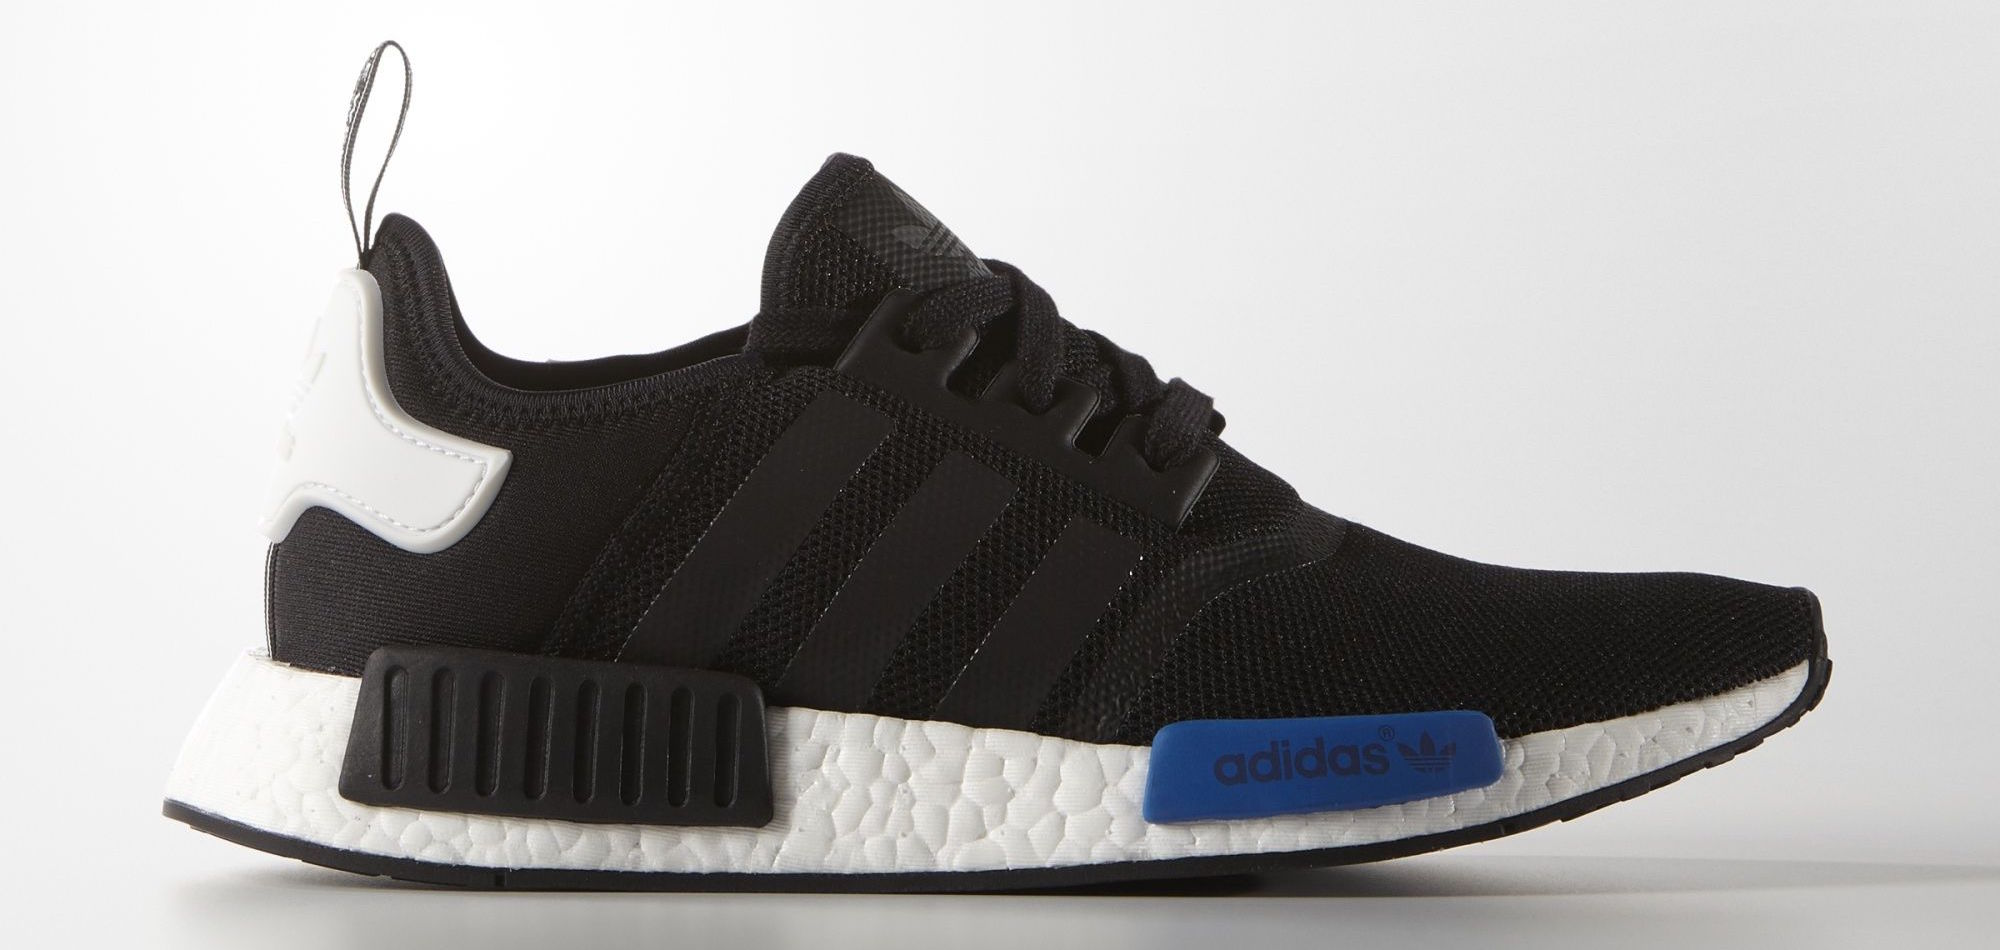 448cf9b437e72 Adidas Nmd Nomad Runner los-granados-apartment.co.uk